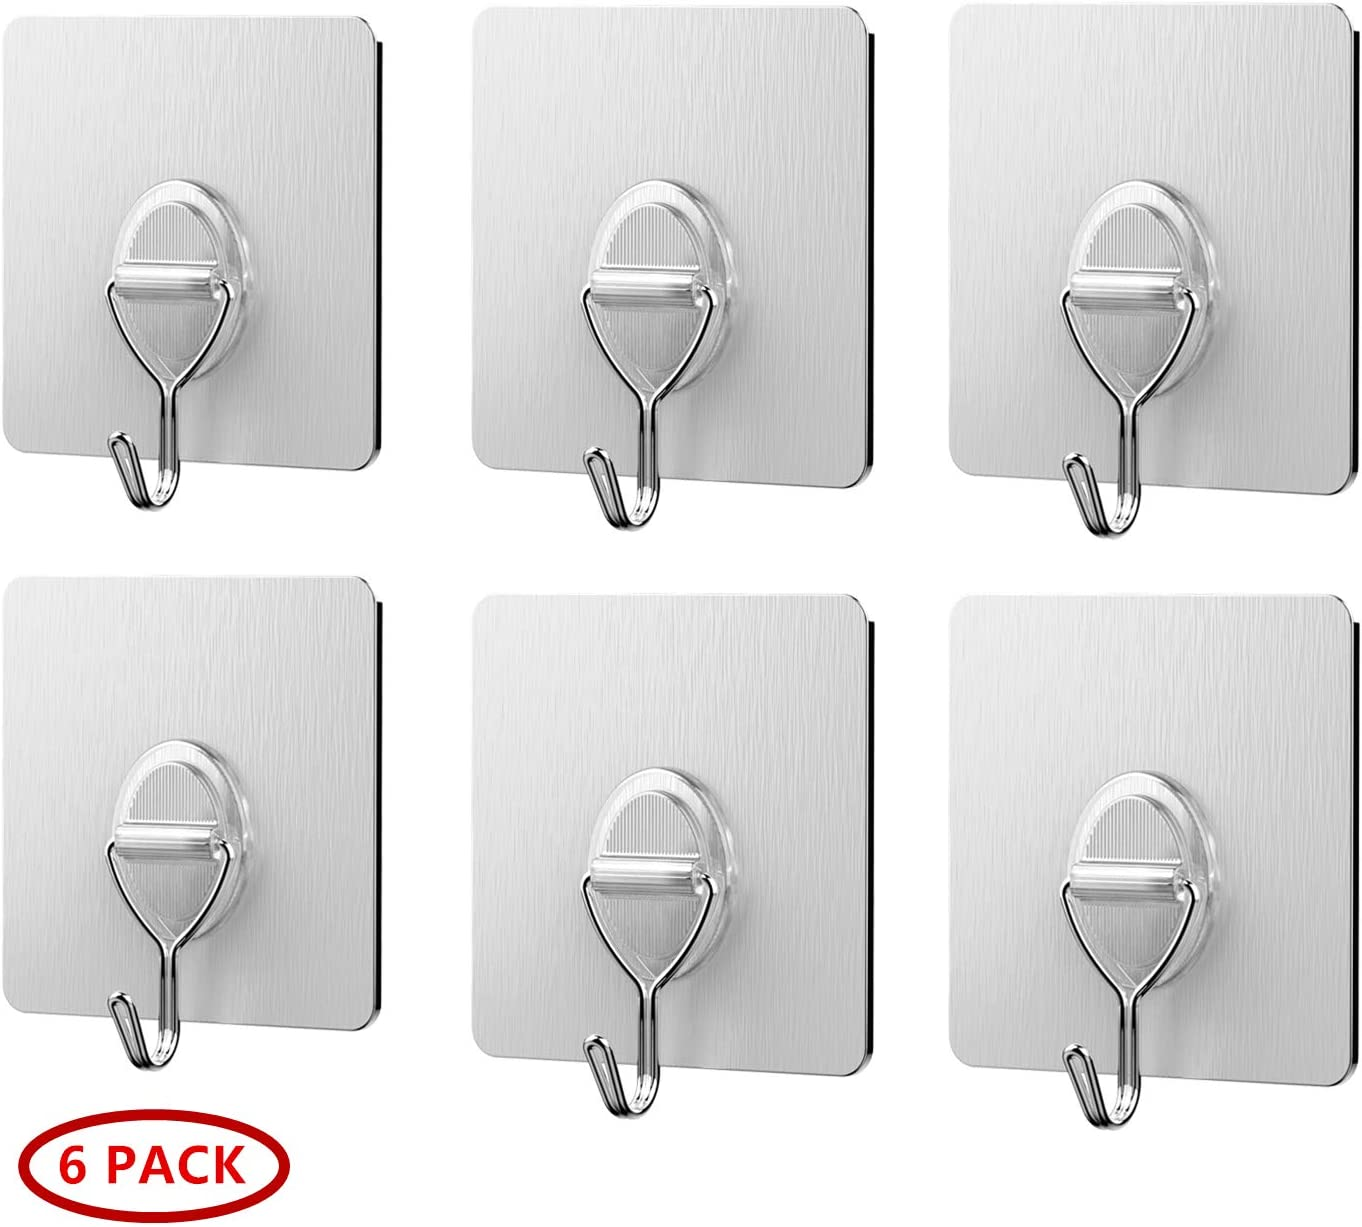 Traceless Adhesive Hook, Einfagood Strong Wall Hook, Sticky Hook Suitable for Kitchen, Bathroom, Bedroom, Office (Silver 6 Pcs)